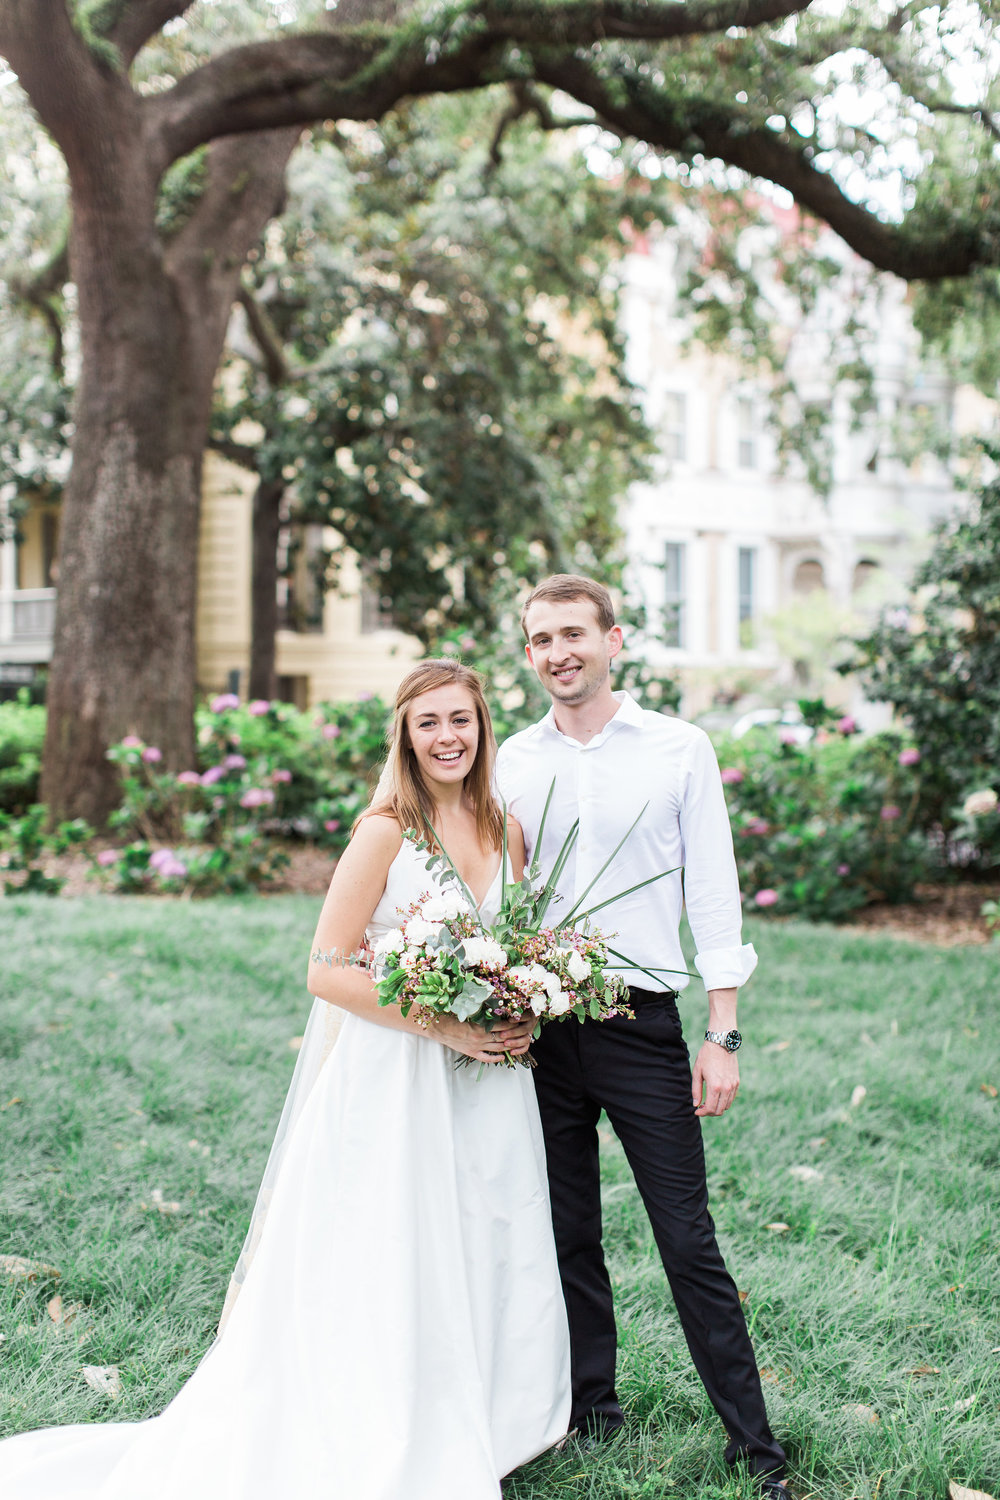 apt-b-photography-kate-mcdonald-mccants-forsyth-park-elopement-forsyth-fountain-rainy-wedding-day-savannah-florist-ivory-and-beau-bridal-boutique-savannah-wedding-gowns-savannah-weddings-savannah-wedding-planner-adele-amelia-gold-veil-14.jpg